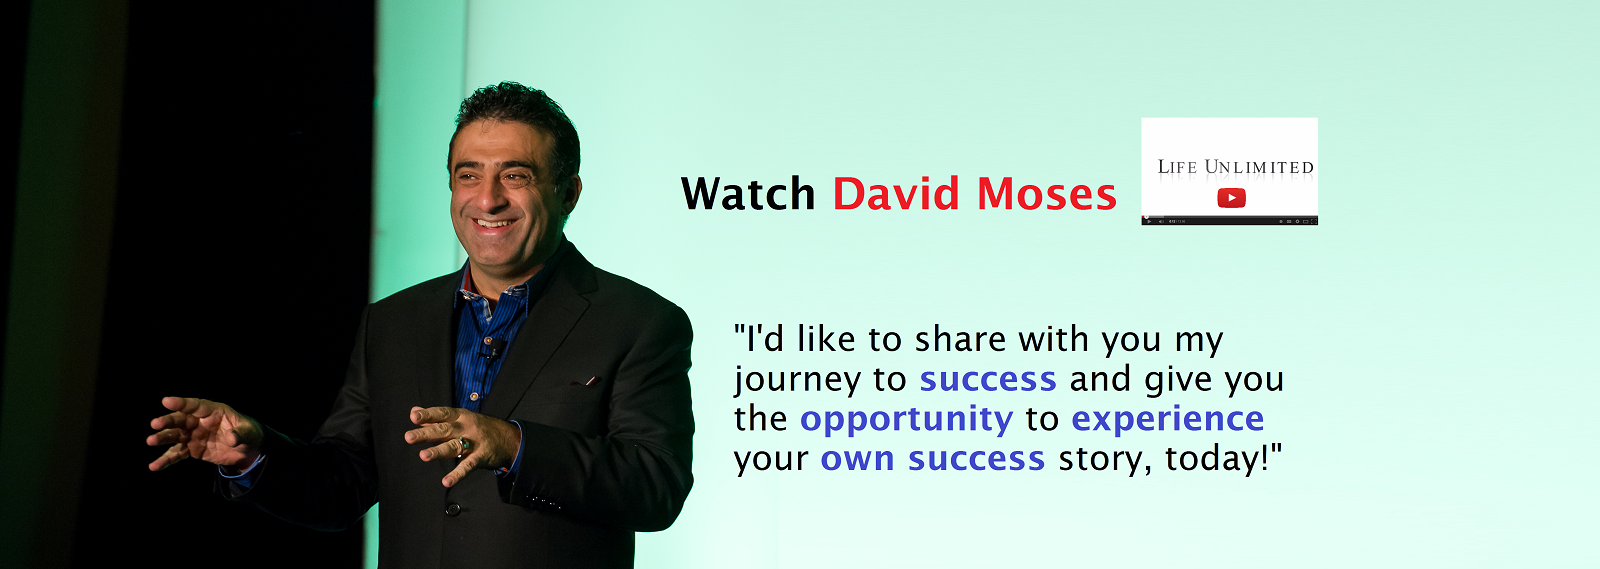 david moses mlm leaders david moses make money zija